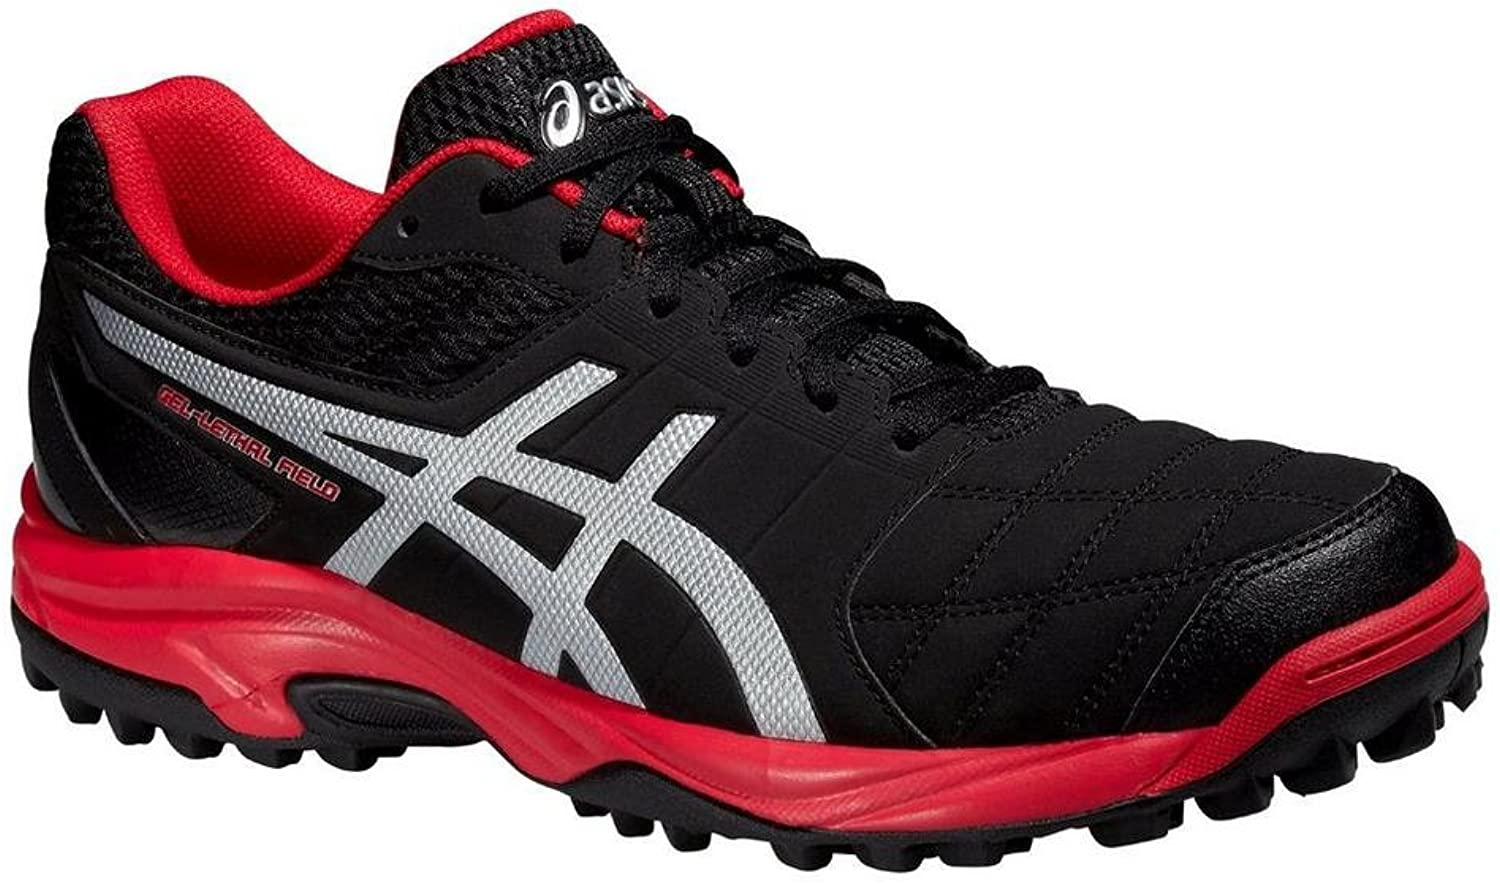 ASICS Gel-Lethal Field 2 Hockey shoes - AW15